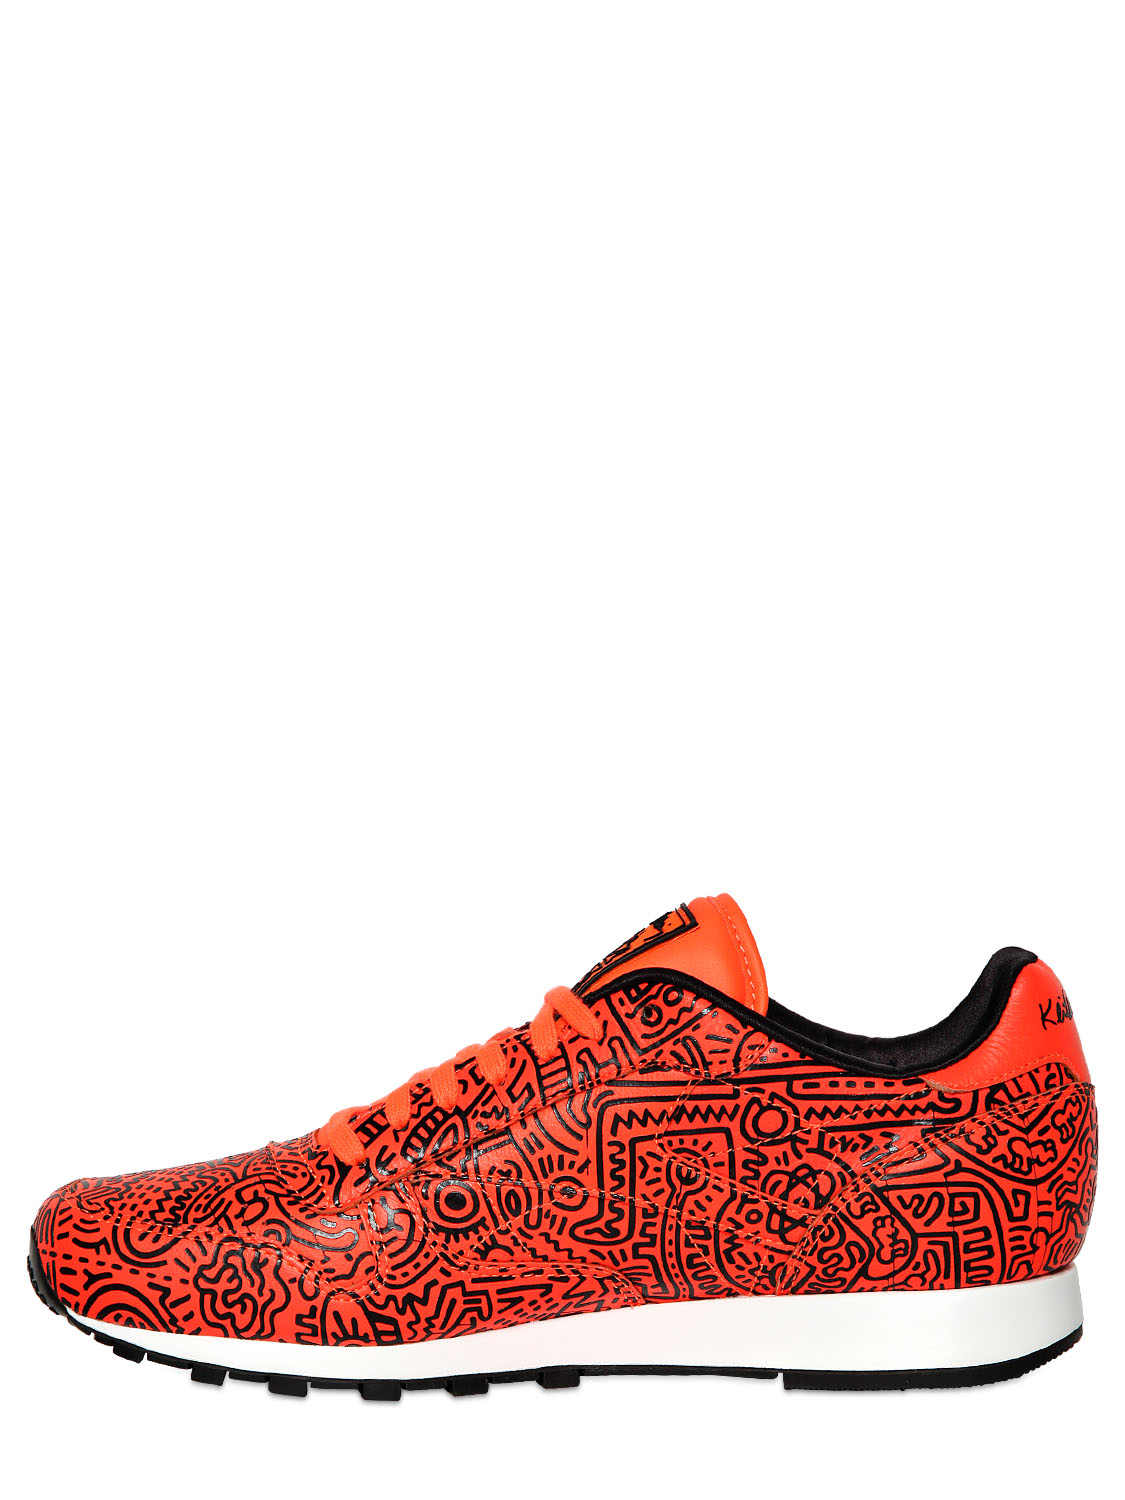 c6e430a789a Lyst - Reebok Leather Keith Haring Running Sneakers in Orange for Men